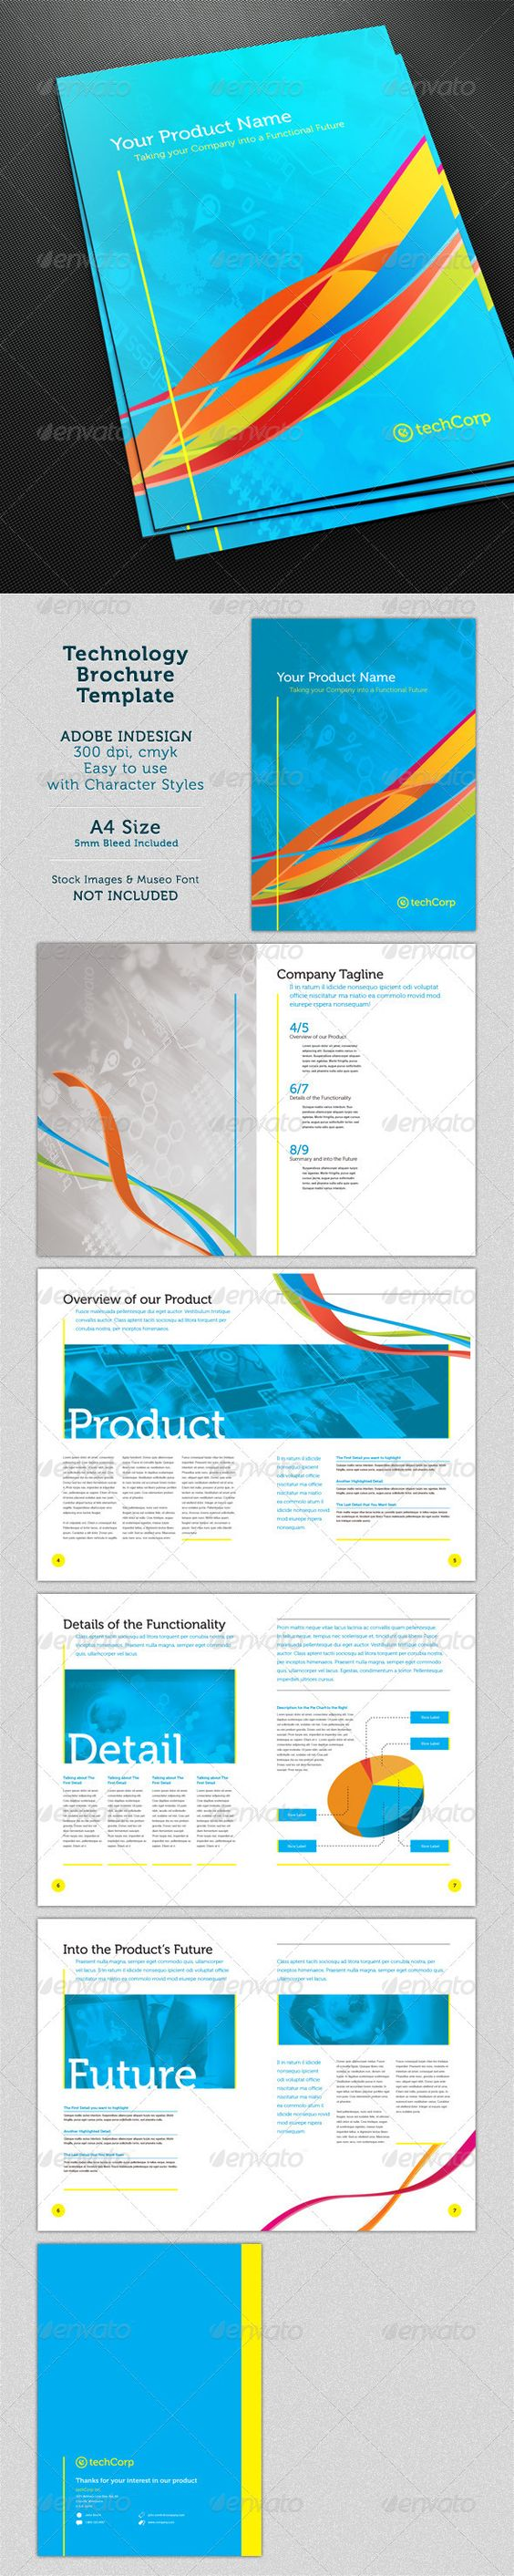 Free Information Technology Brochure Template Download From @StockLayouts |  IT U0026 Technology Services Marketing | Pinterest | Brochure Template,  Brochures ...